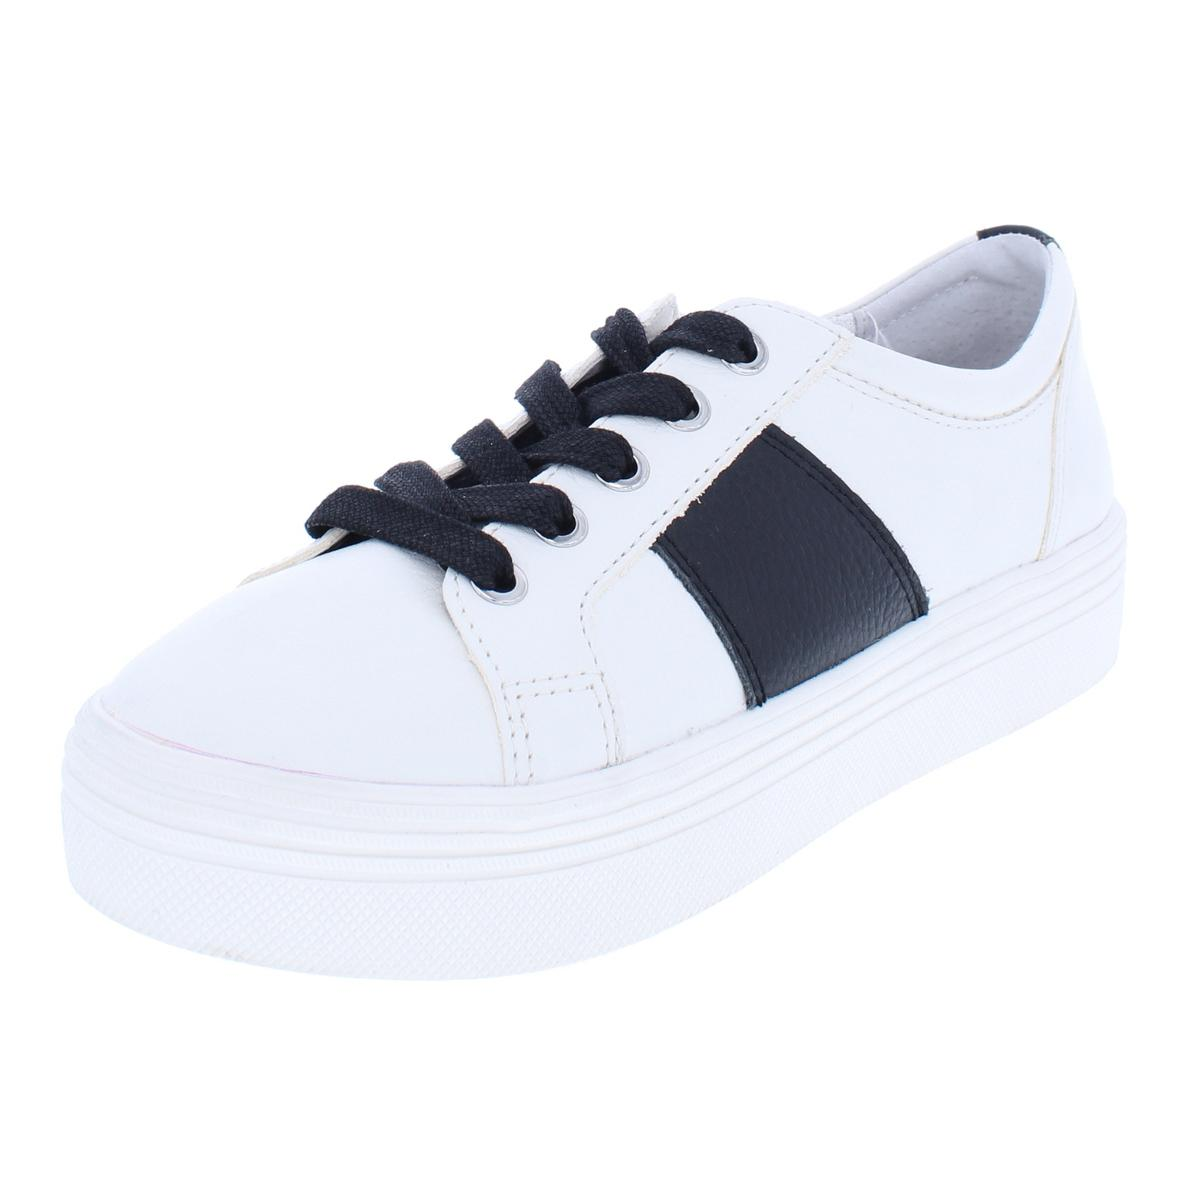 76494bc3b492 Details about Dolce Vita Womens Tavina Ivory Casual Shoes Sneakers 10  Medium (B